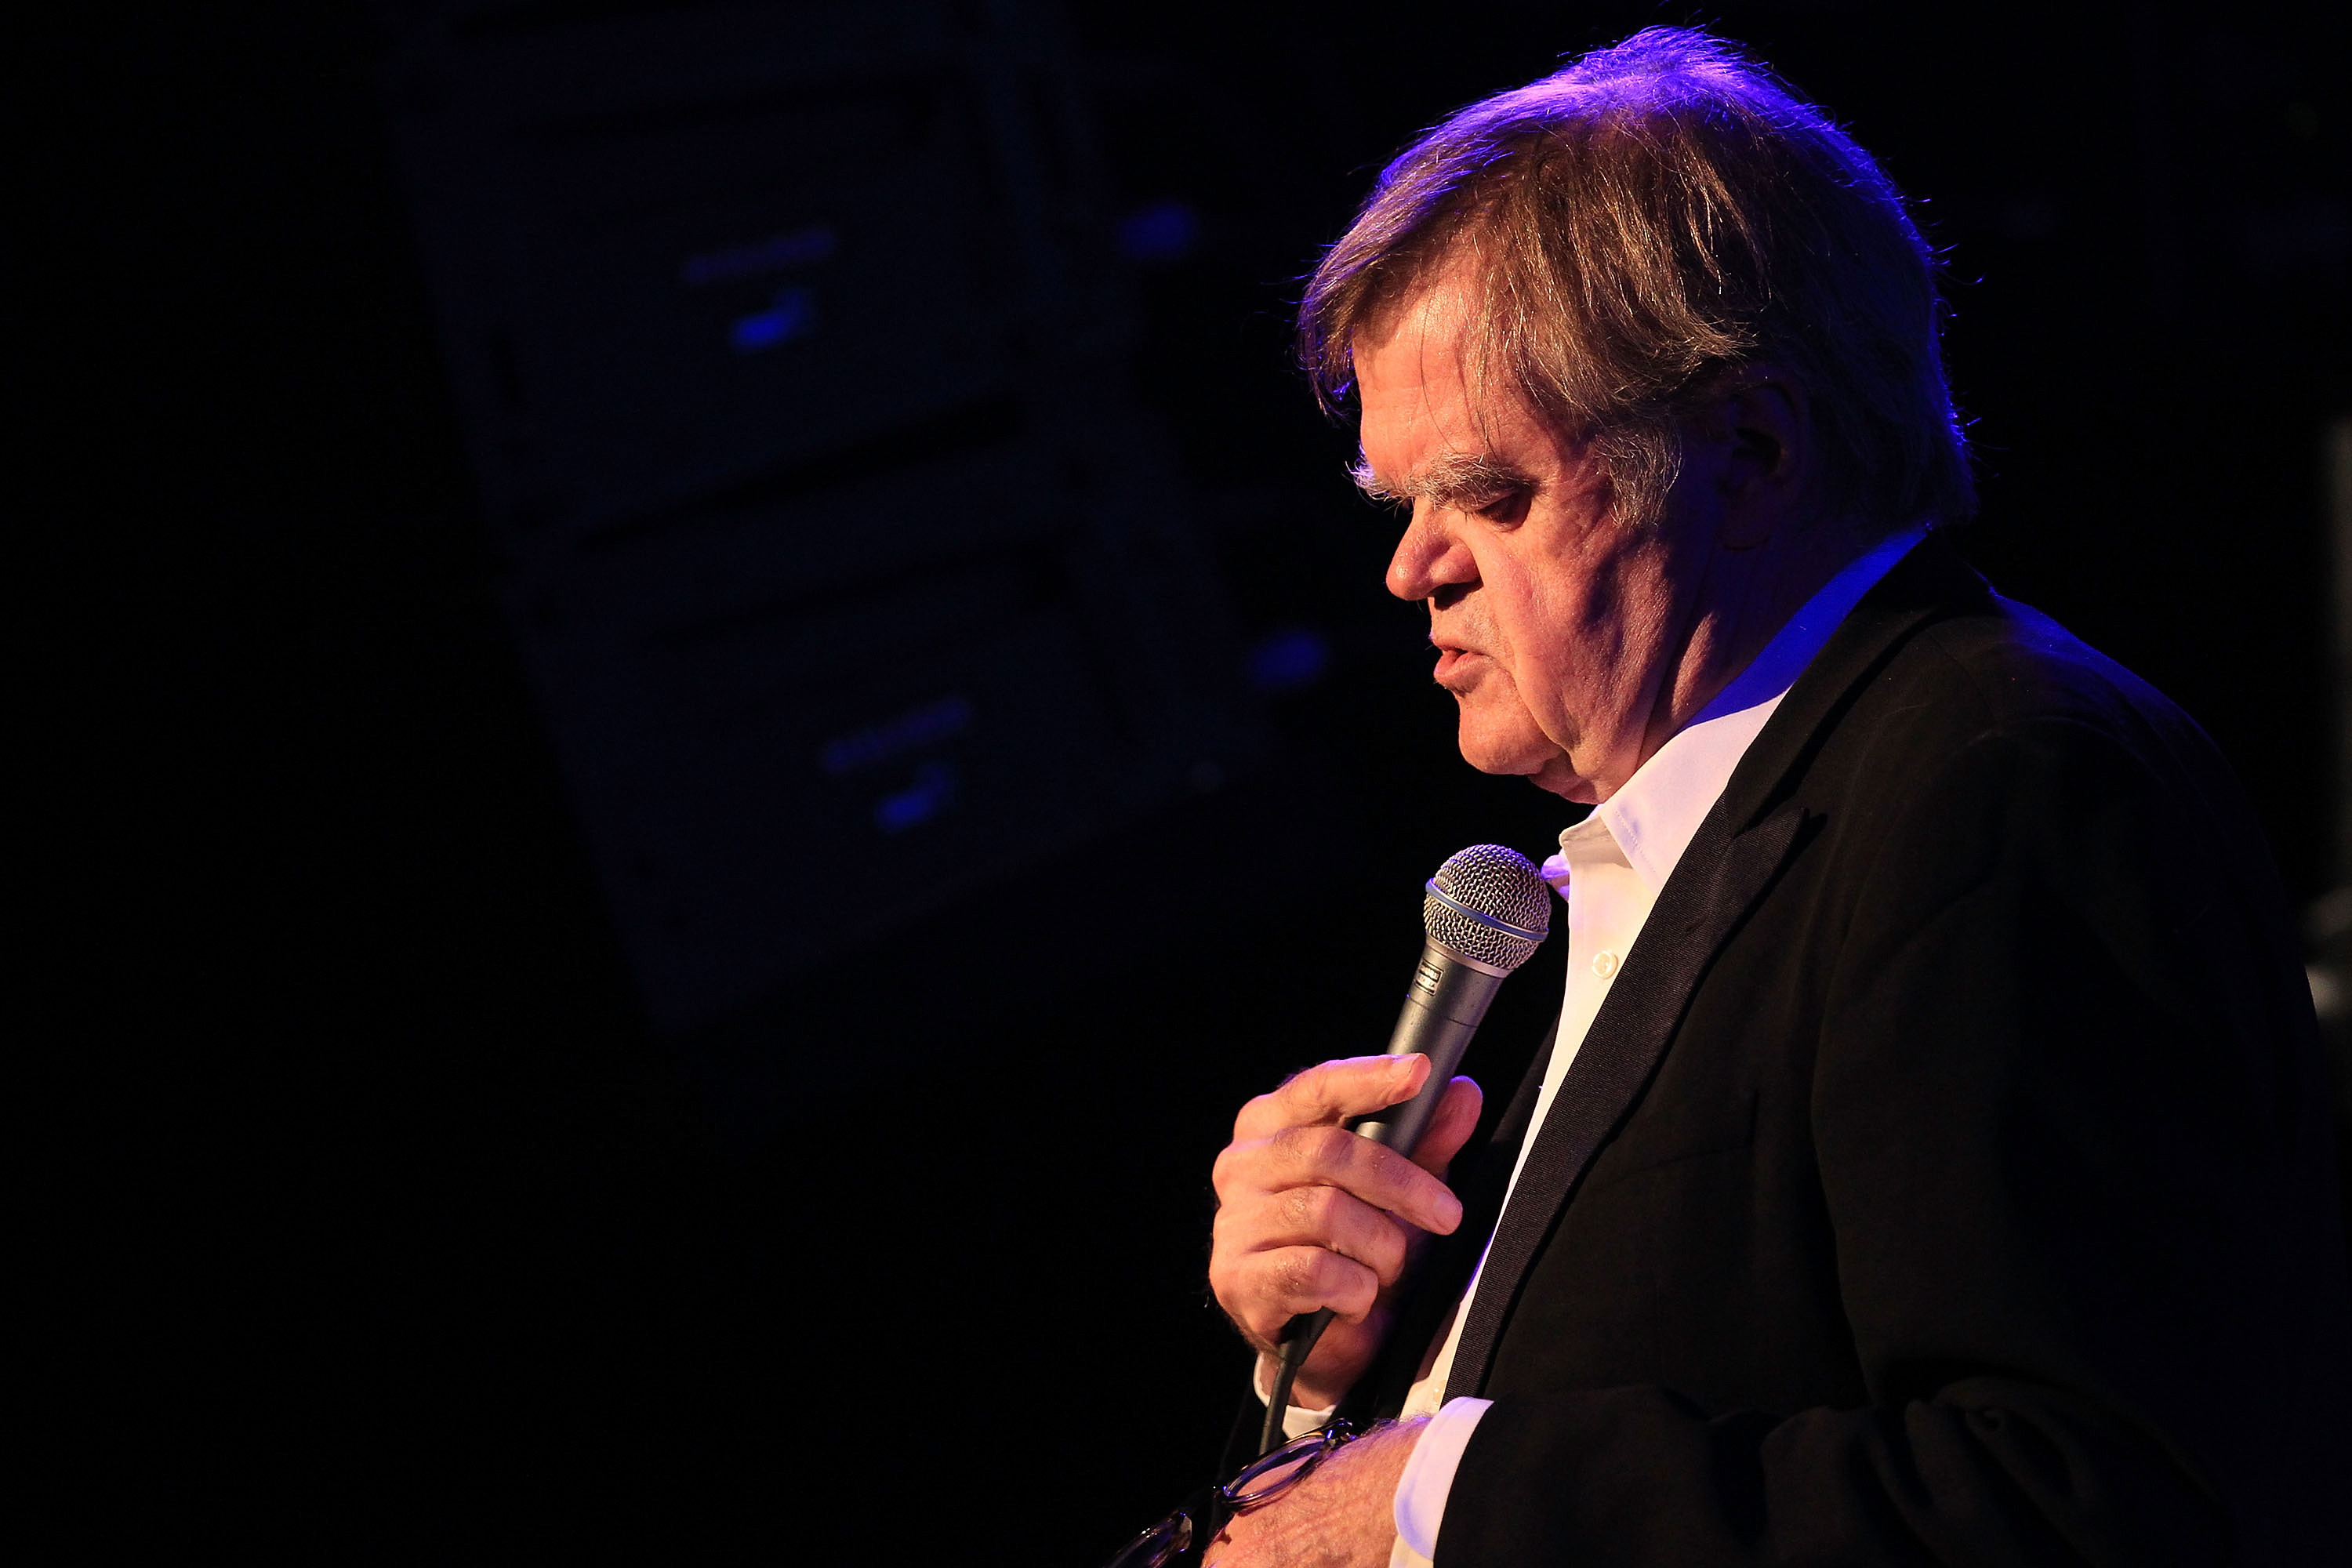 Garrison Keillor performs at City Winery on Oct. 4, 2017 in New York City.